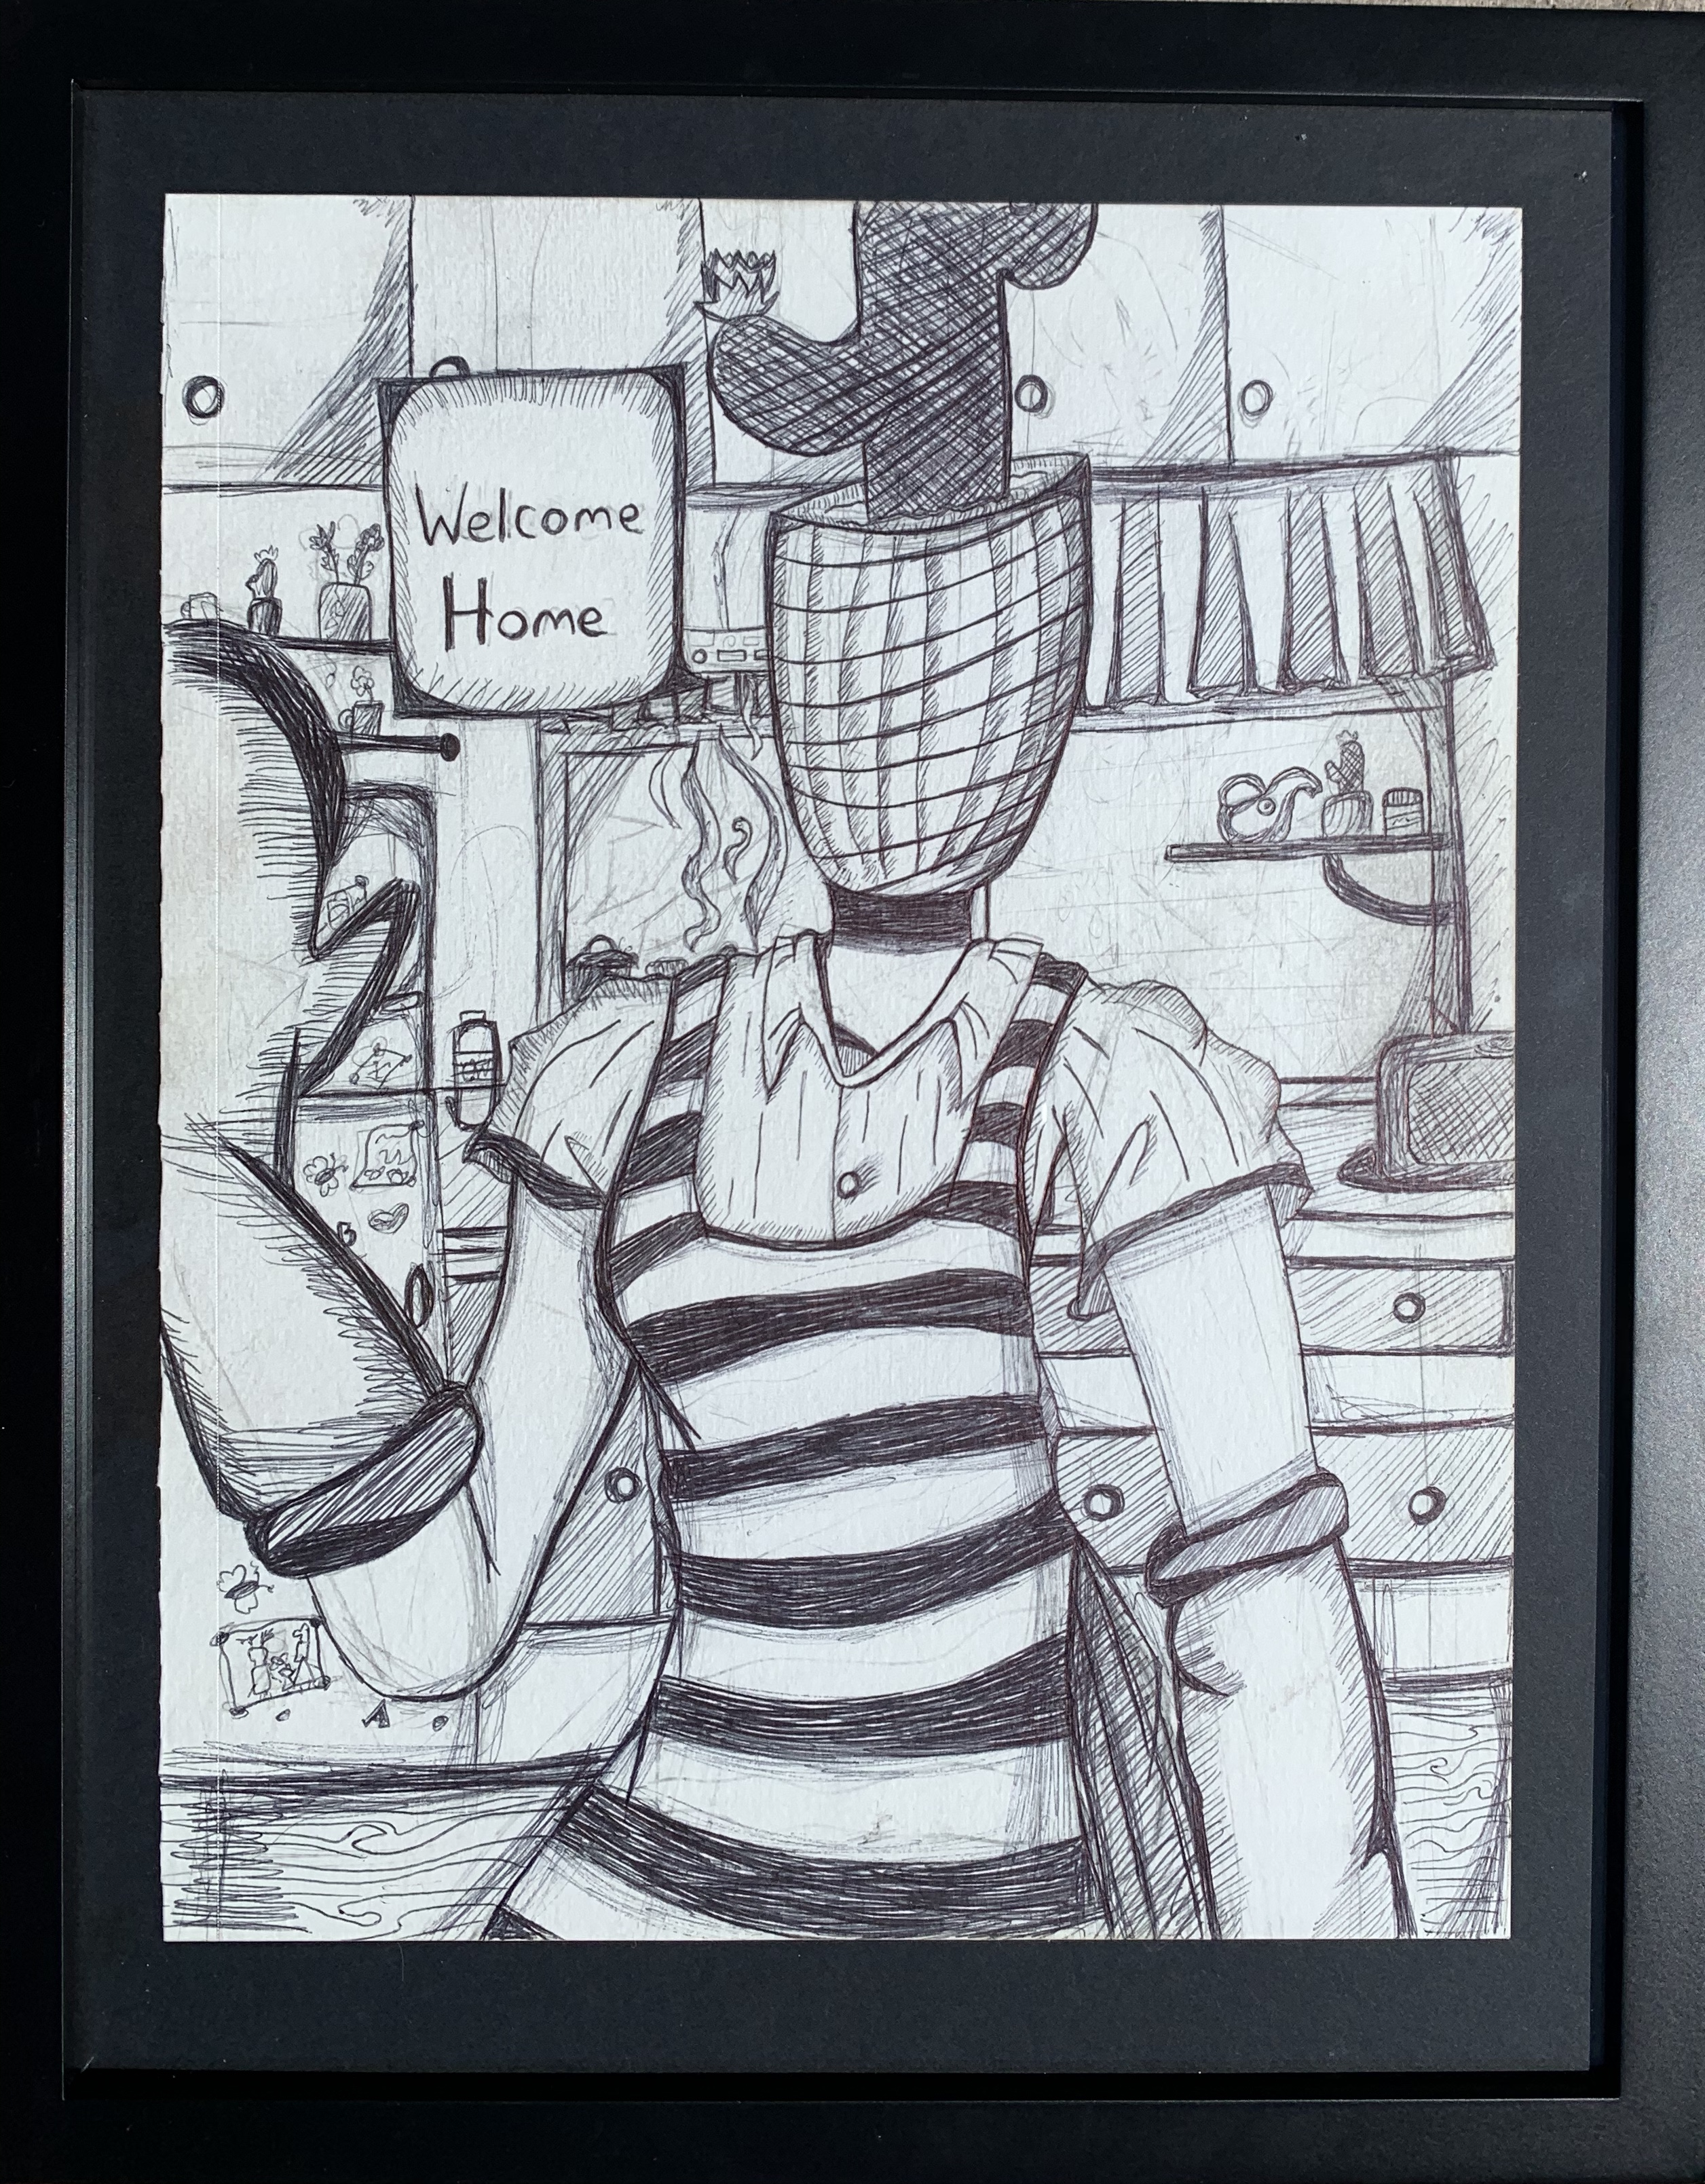 'Cactus Mom', pen & ink by ilayda Bekcan (NFS) ⎼ 'My mom has Covid patients. She loves me but is afraid to hug me because she doesn't want to get me sick.'